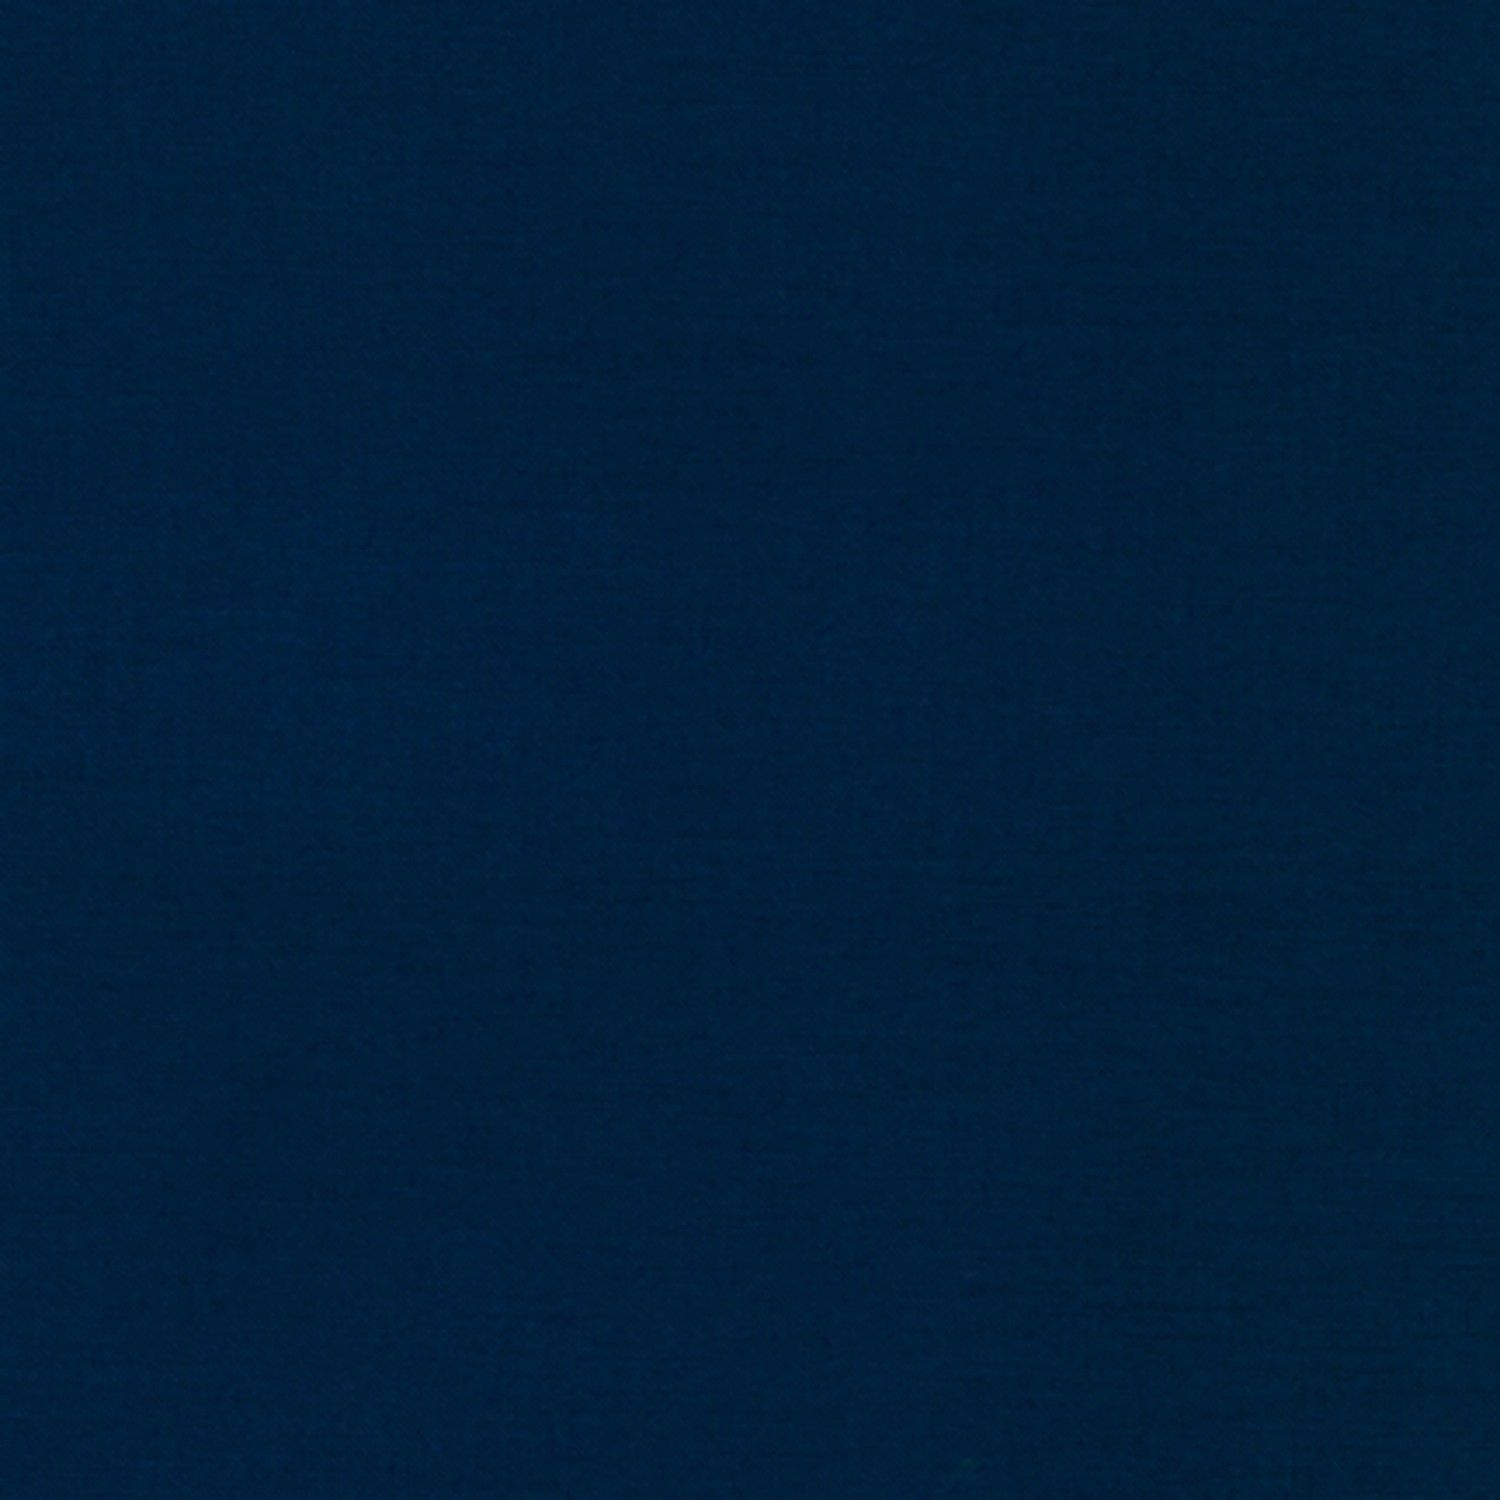 Kona Navy ½ yd-Fabric-Spool of Thread